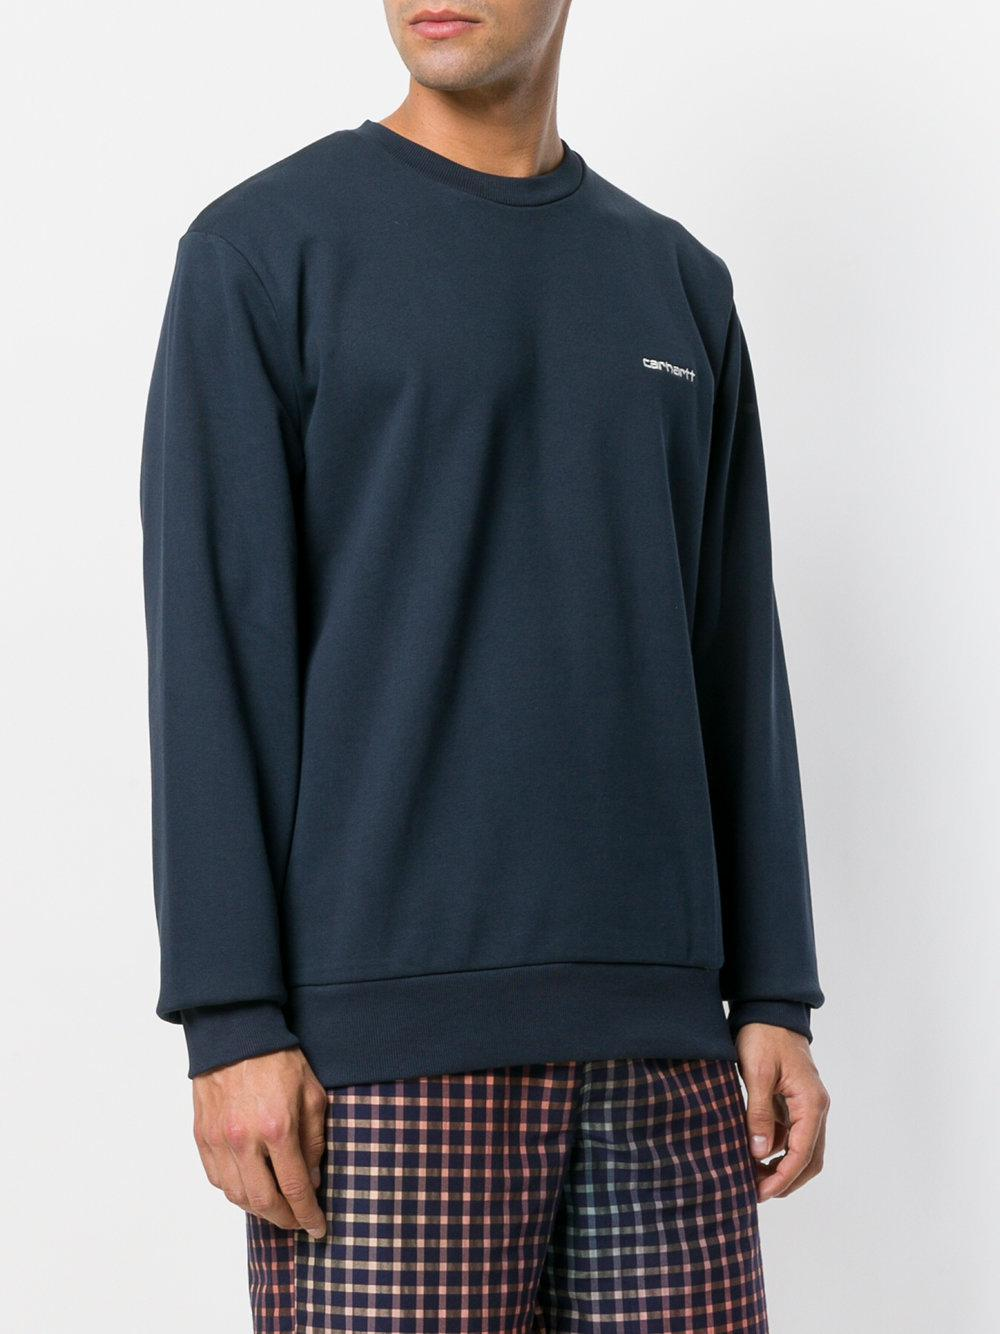 Carhartt Cotton Embroidered Logo Sweatshirt in Blue for Men